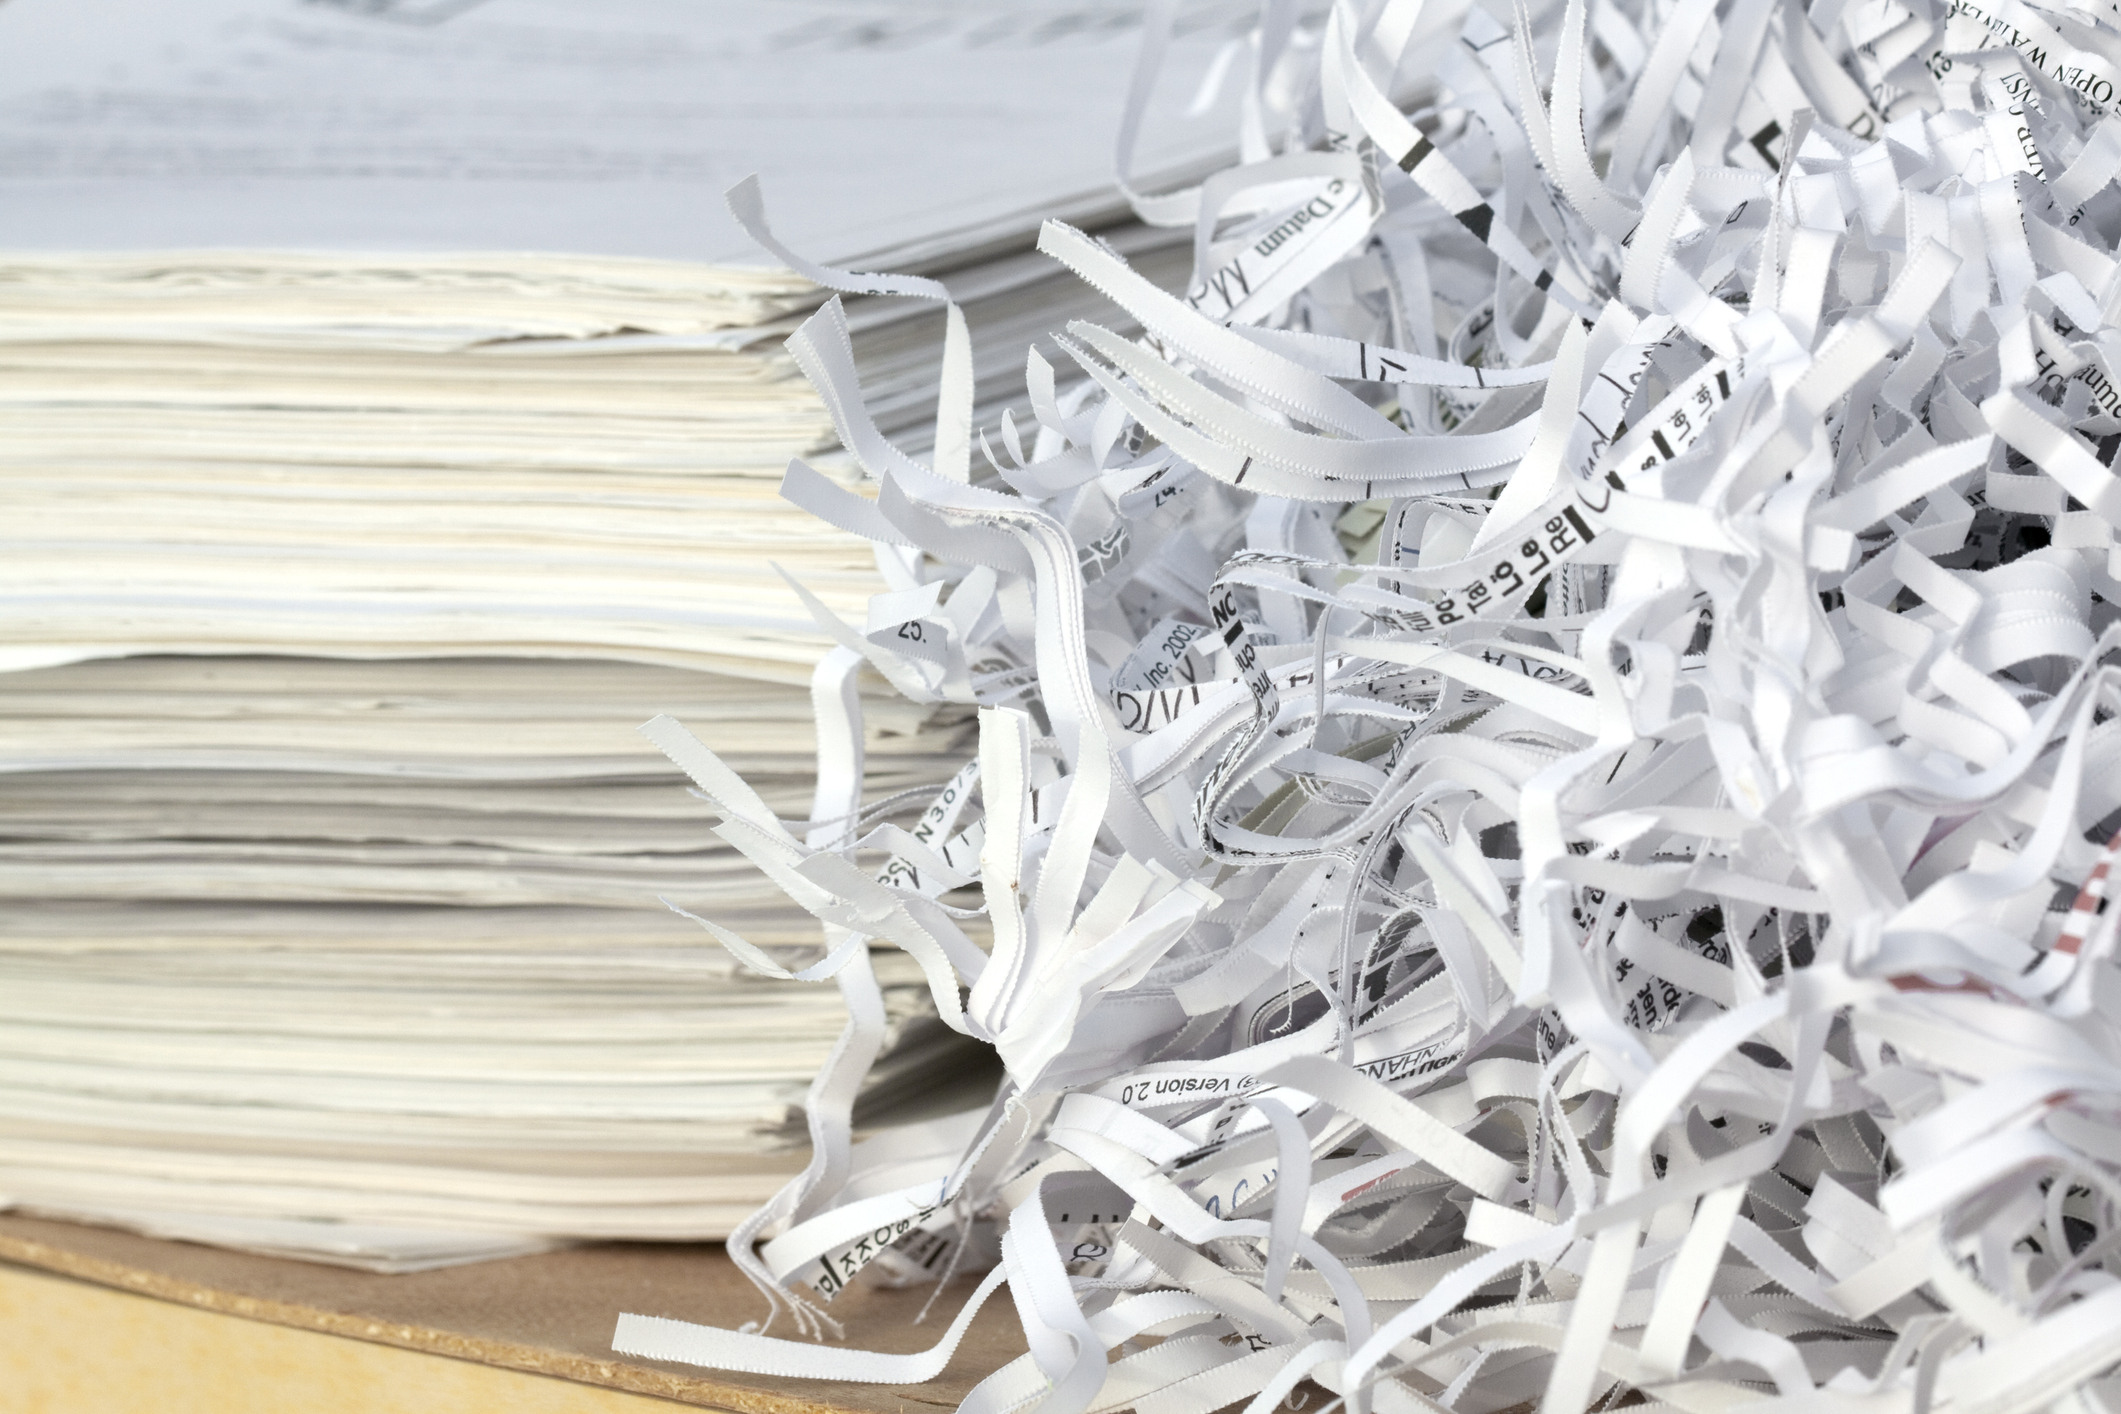 Shredded confidential documents